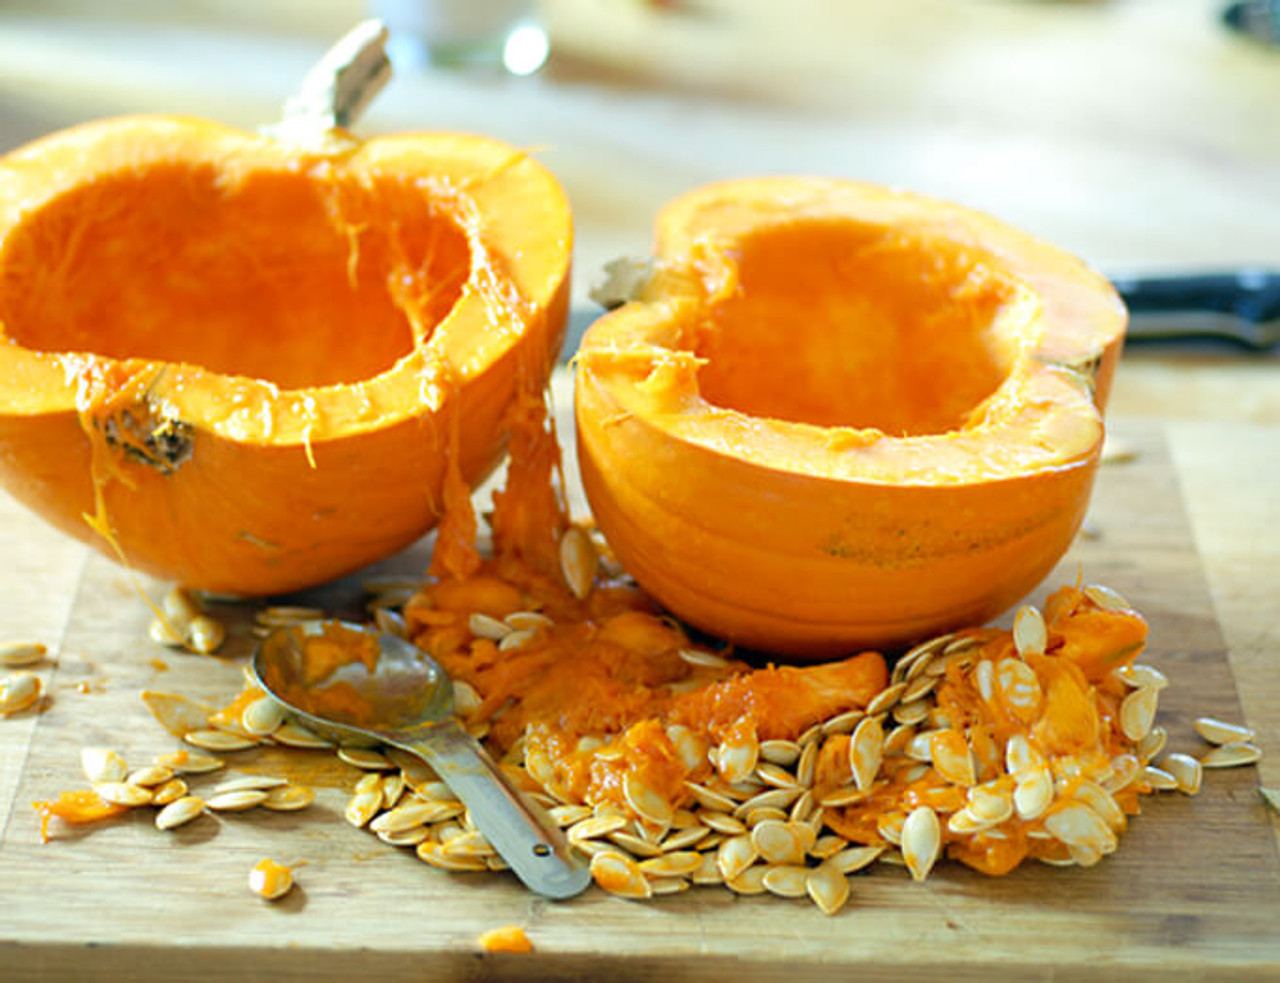 Pumpkin in Skincare